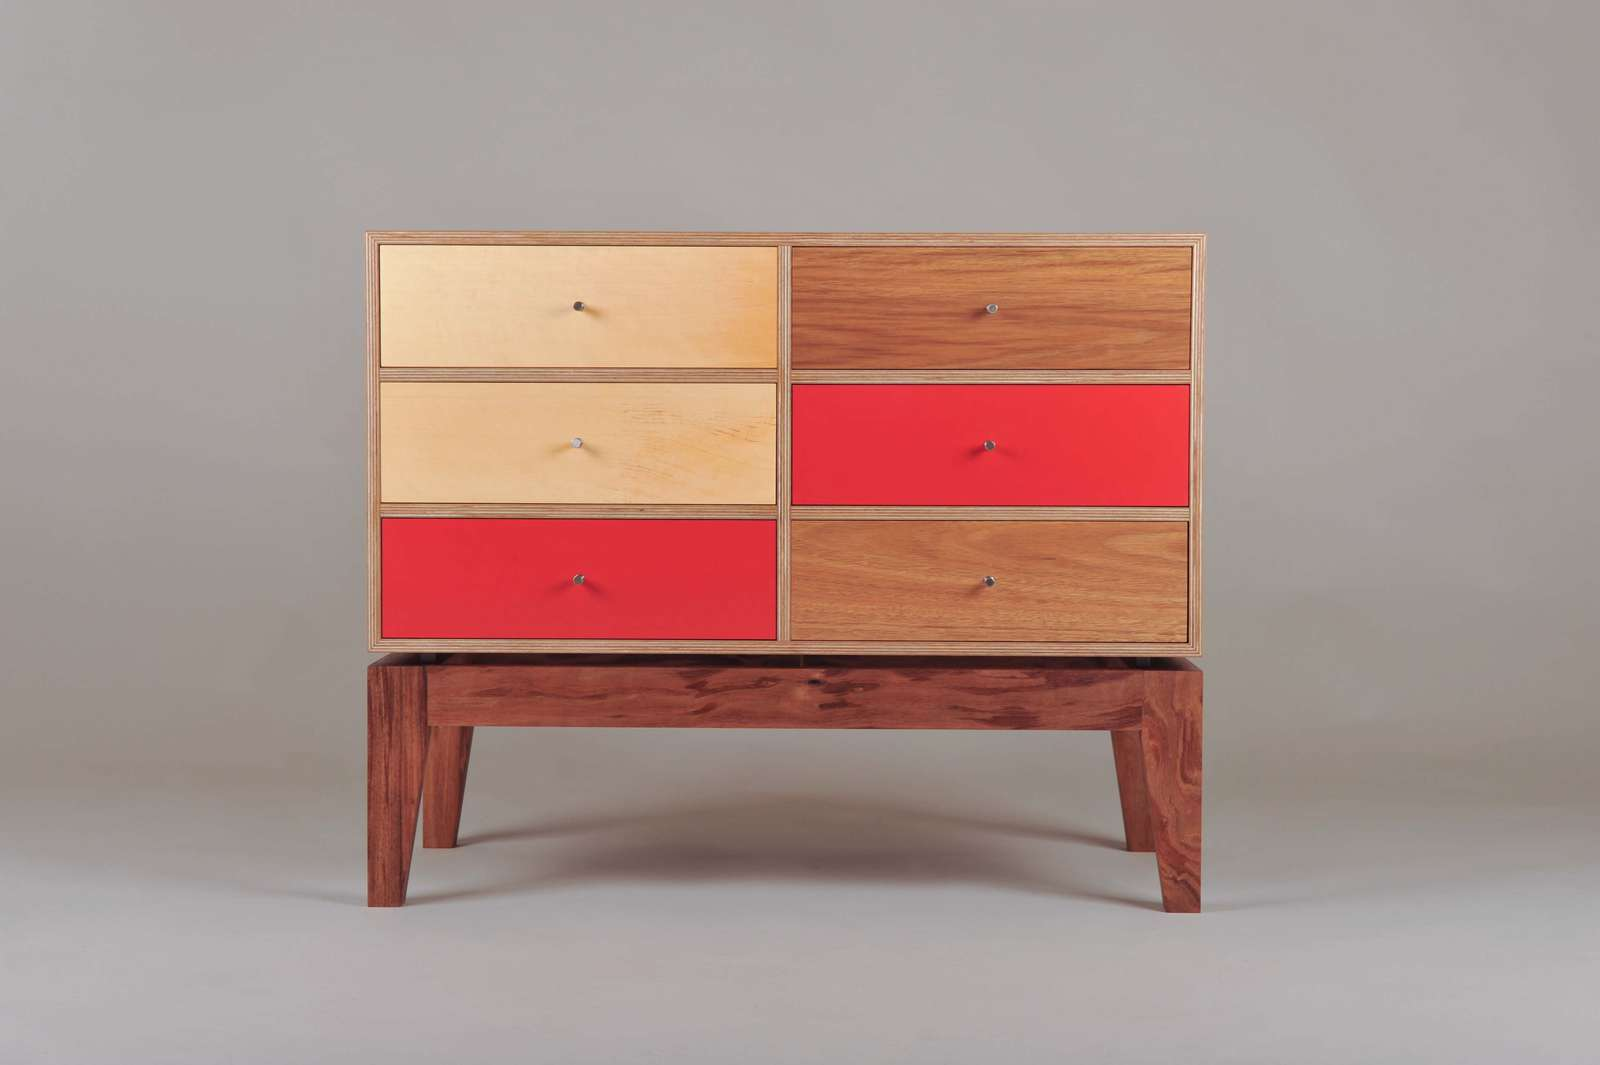 iankea-chest-of-drawers-6 image